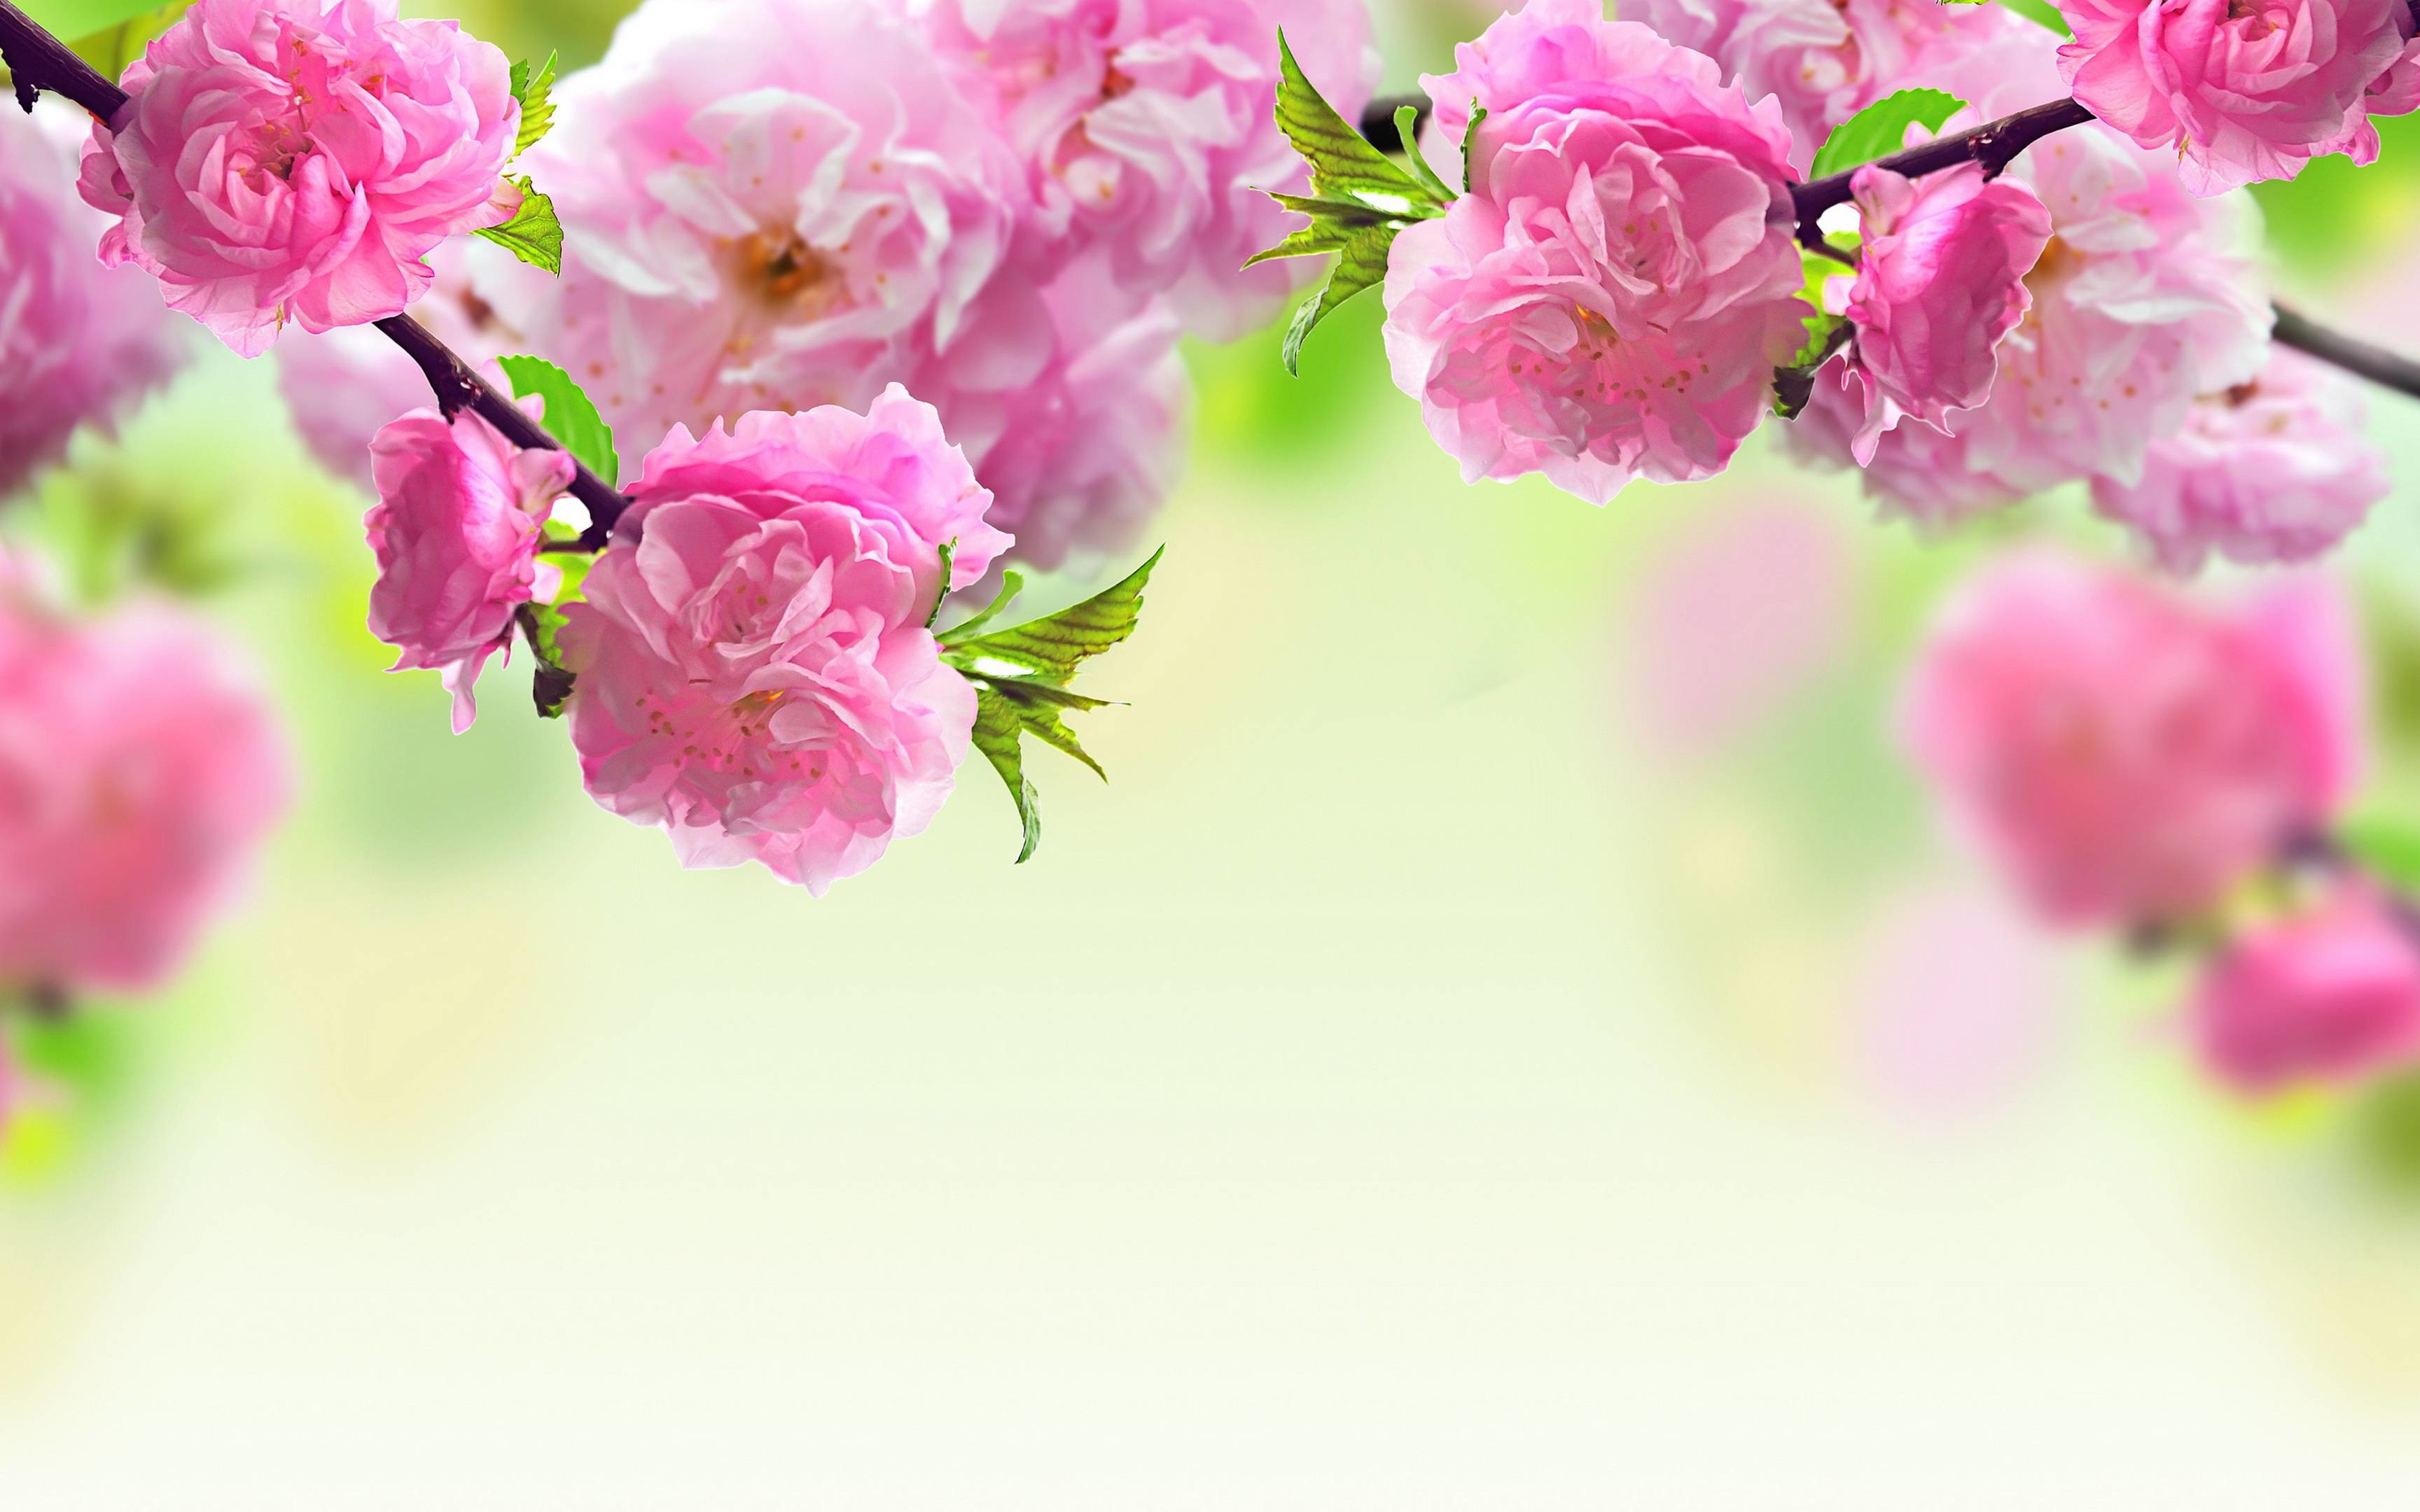 3456x2160 Spring Flowers Background Wallpaper - HD Wallpapers|WallForU.com